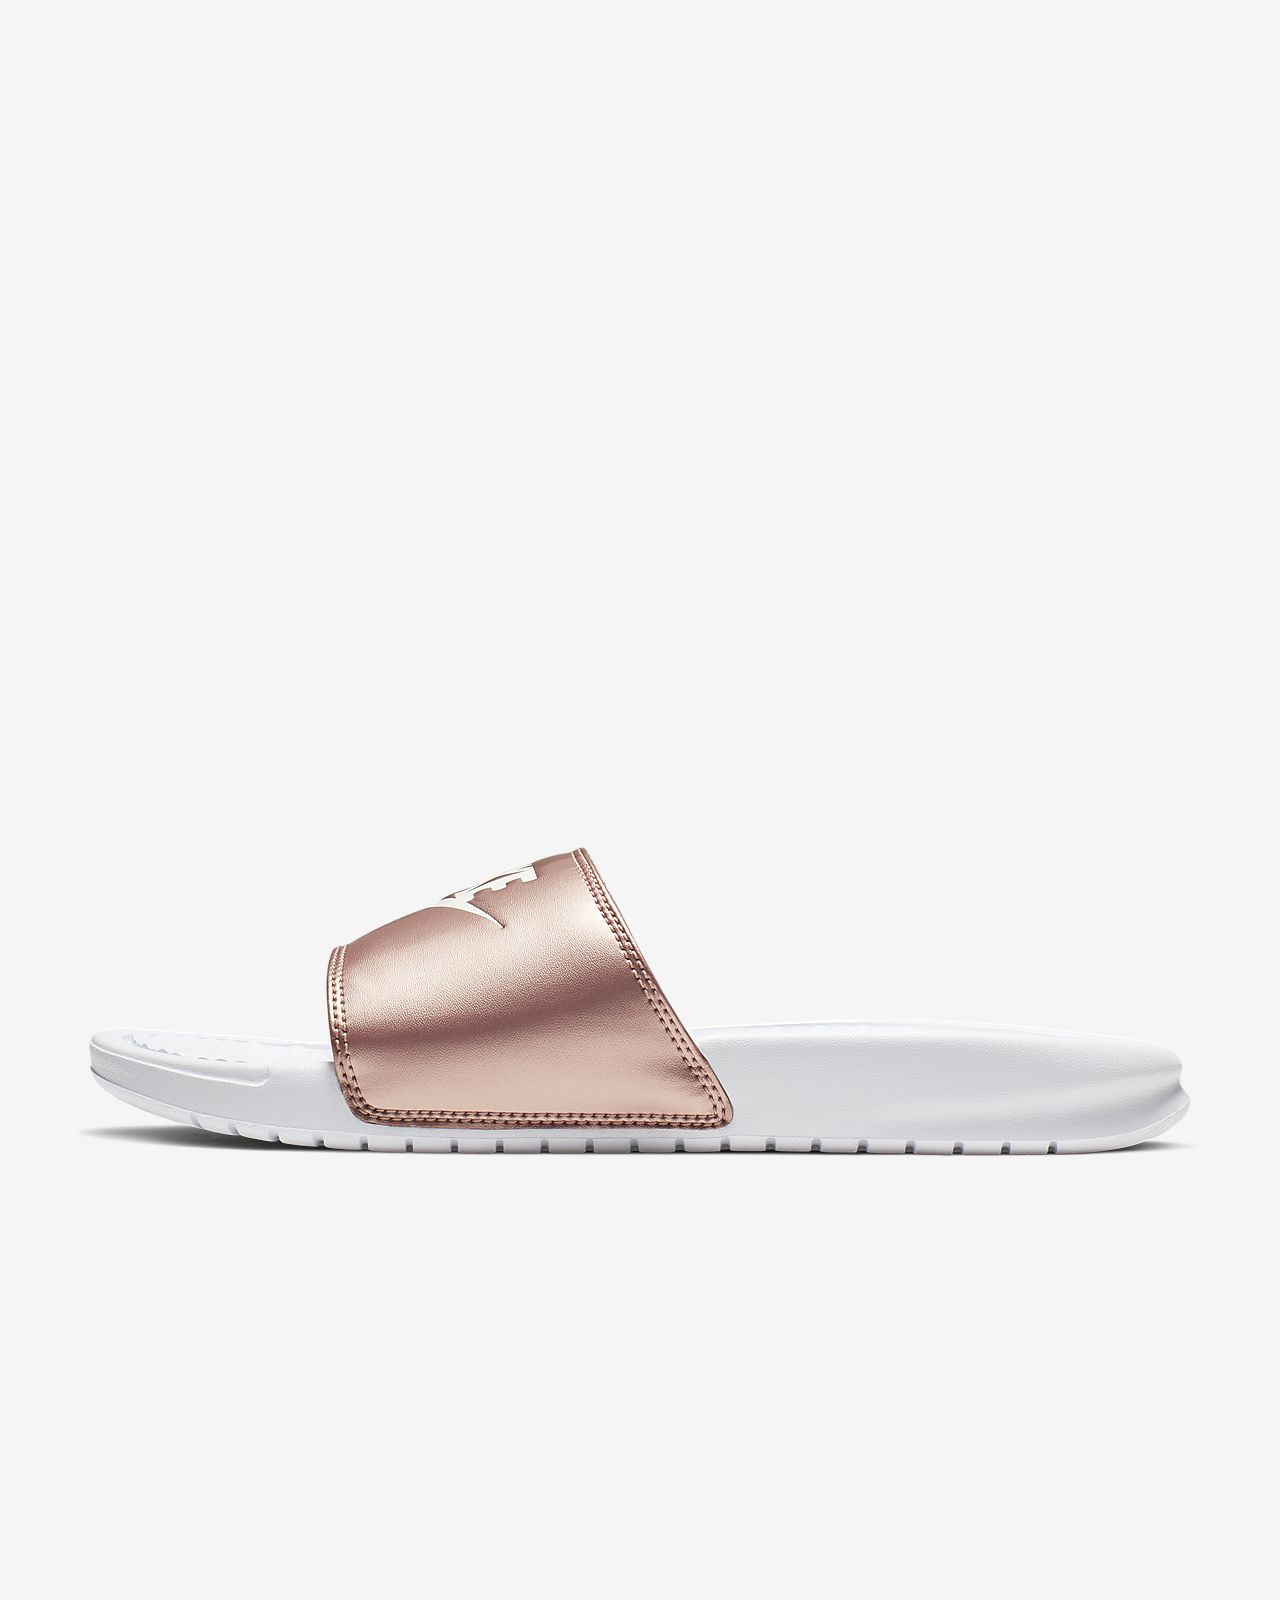 6e4ba348641 Low Resolution Nike Benassi Women s Slide Nike Benassi Women s Slide